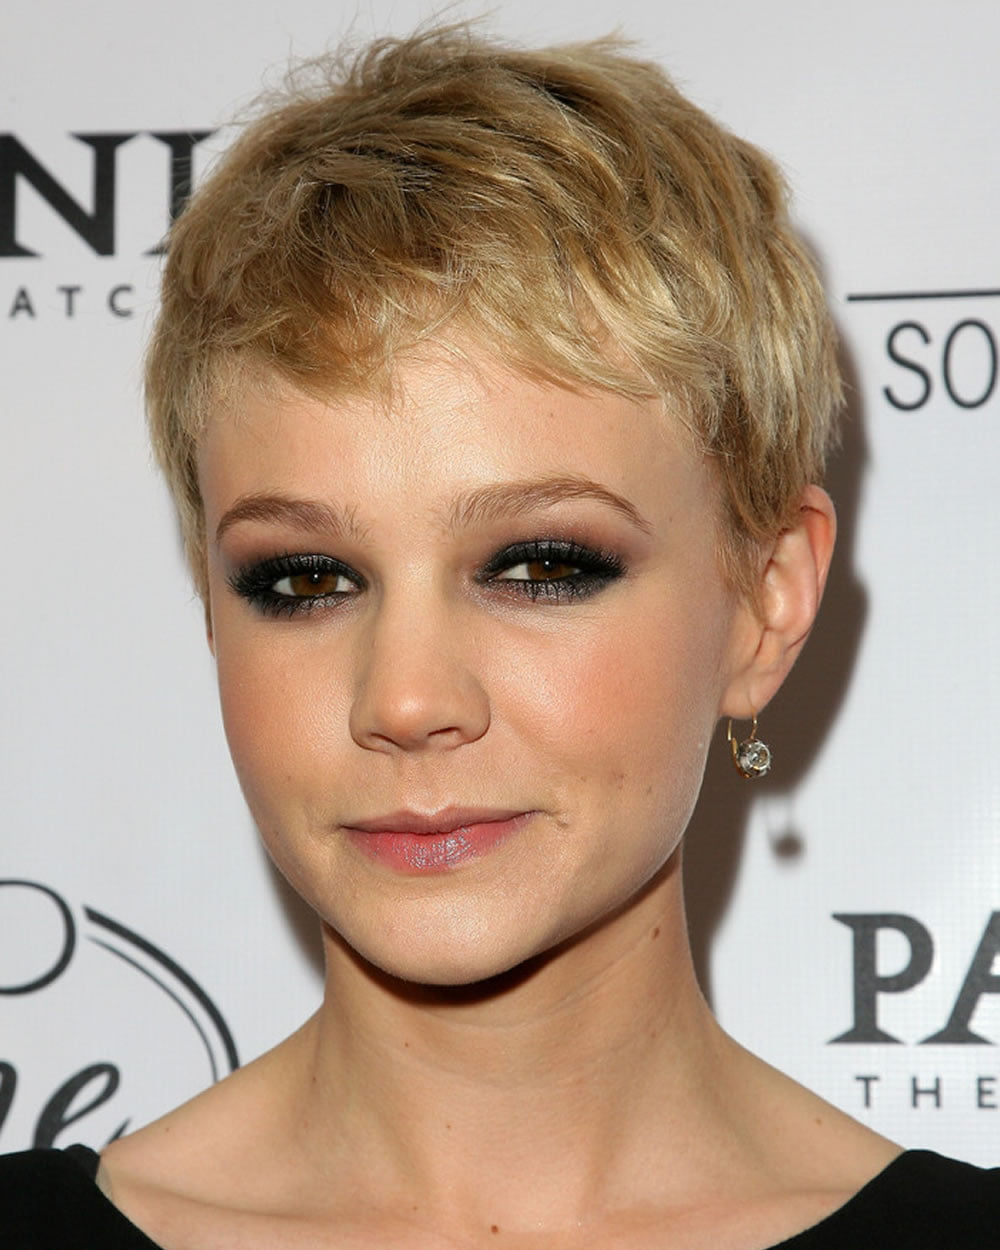 Easy And Fast 36 Pixie Short Haircut Inspirations For 2019